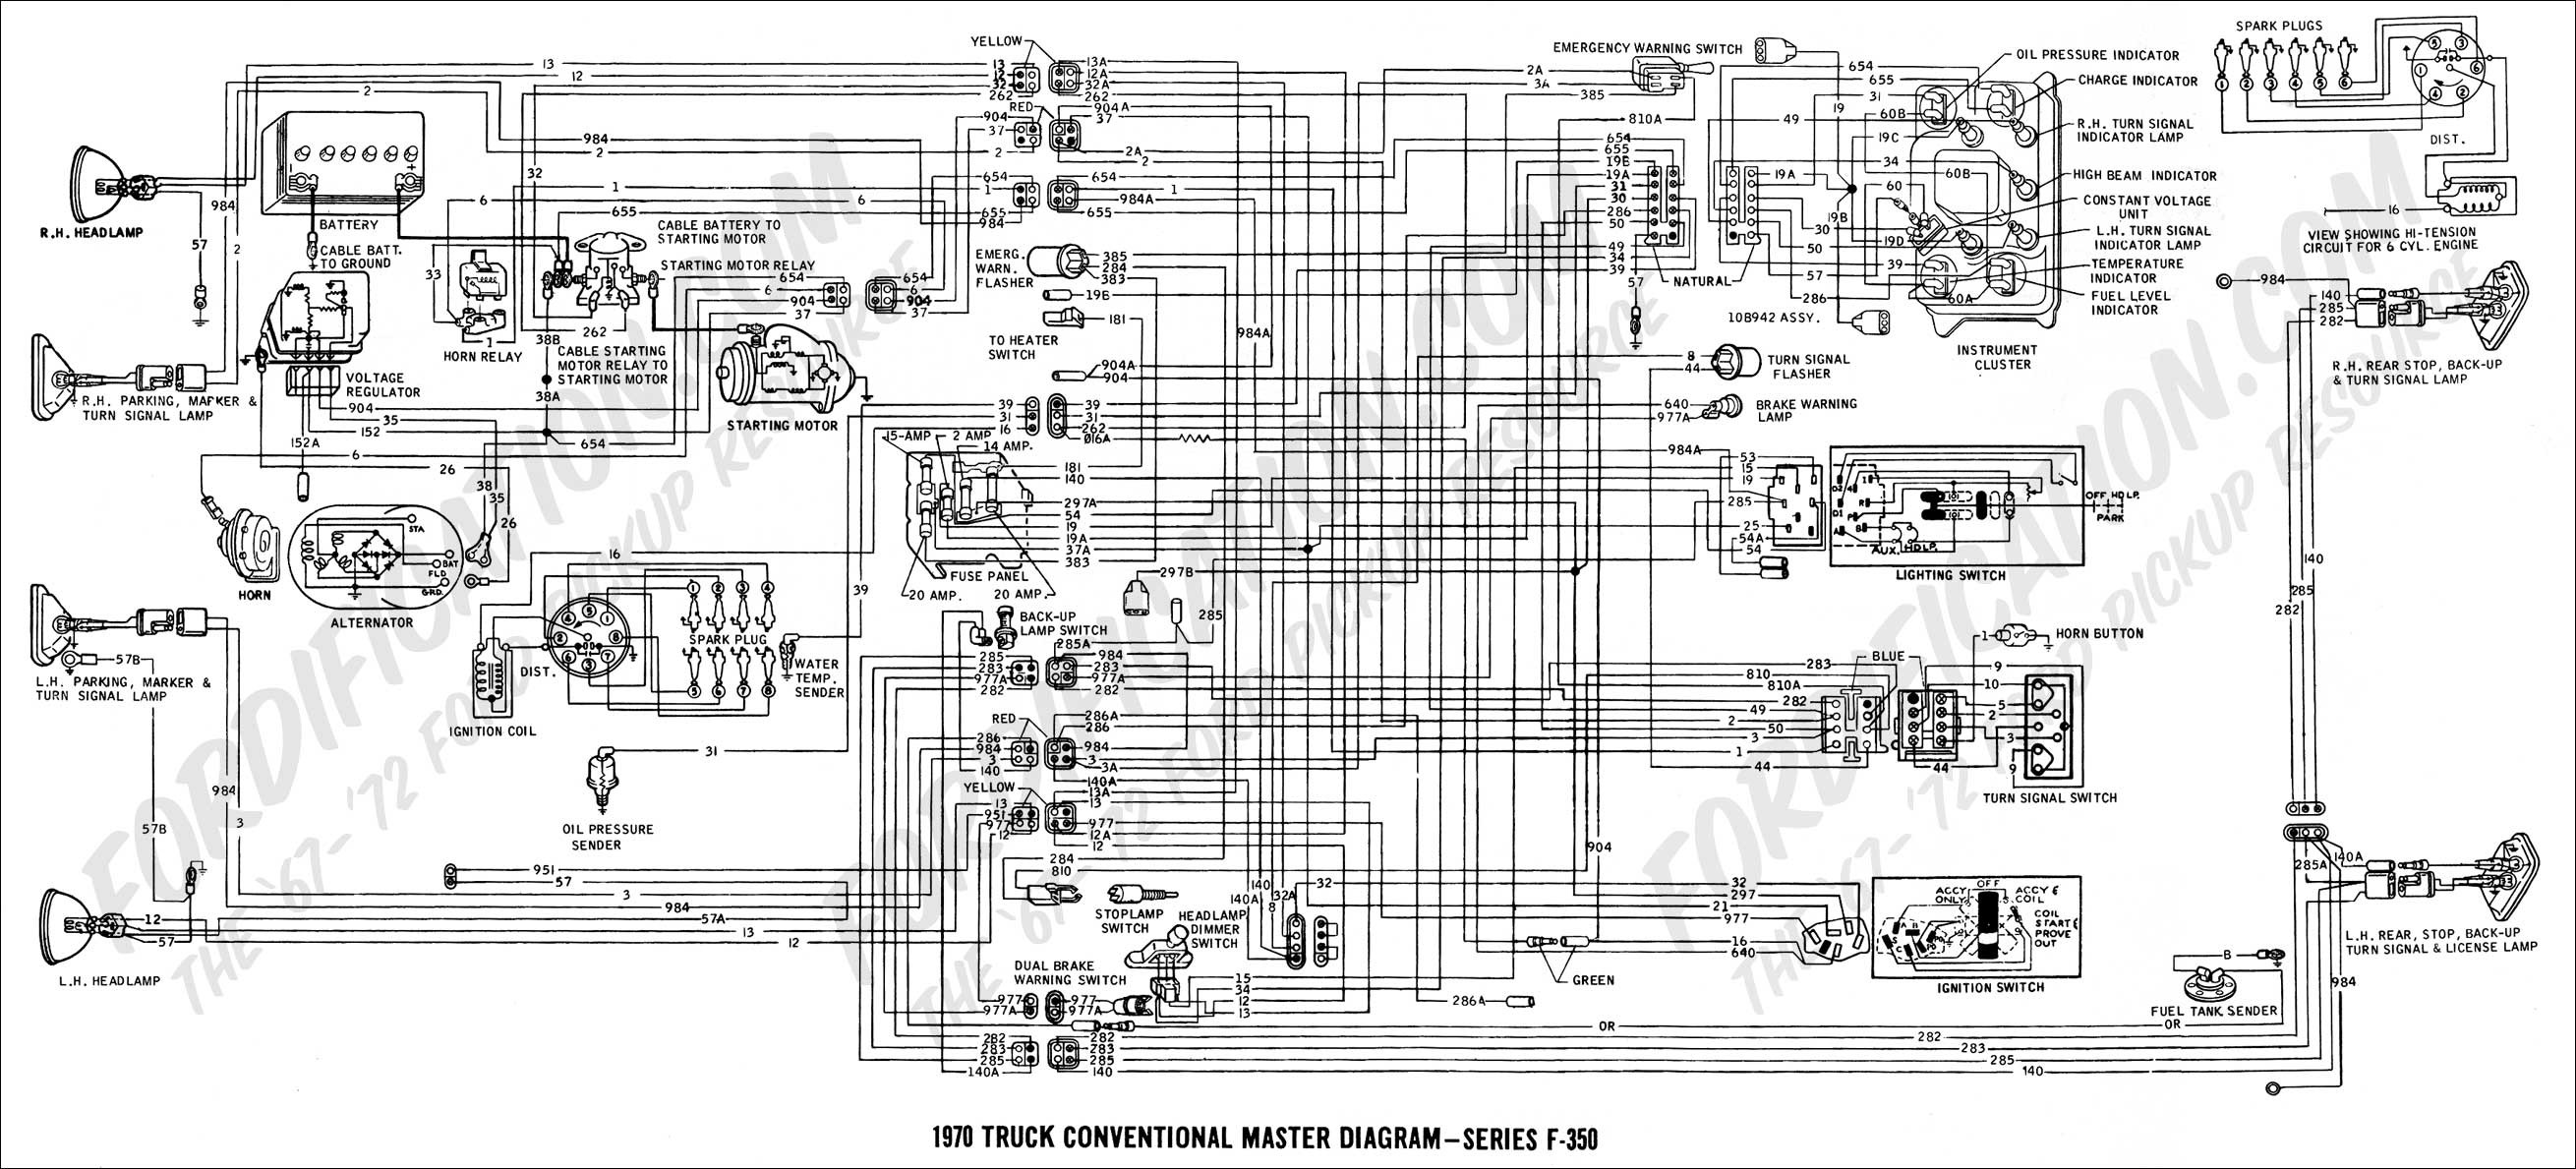 Schematic Diagram Of Diesel Engine Unique Steering Wheel Radio ...